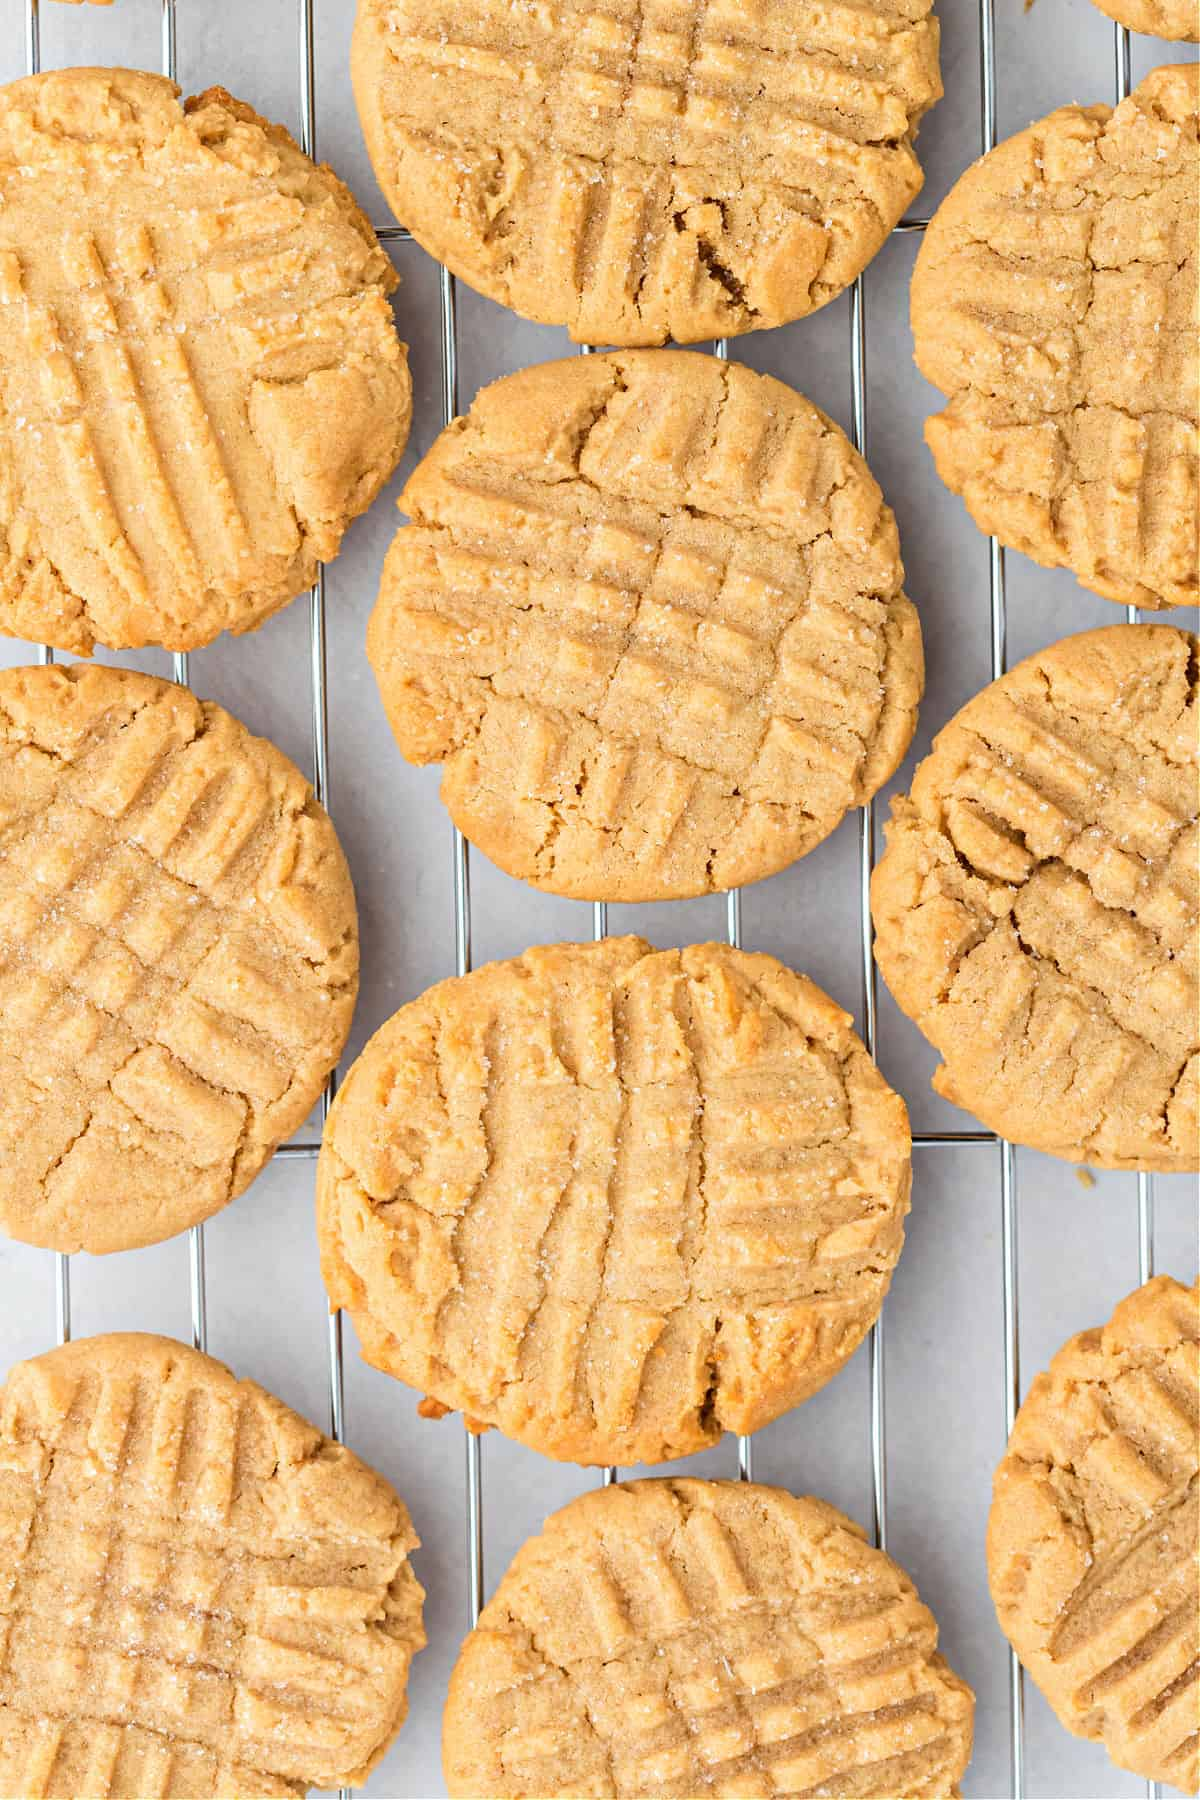 Classic Jif peanut butter cookies with criss cross pattern.